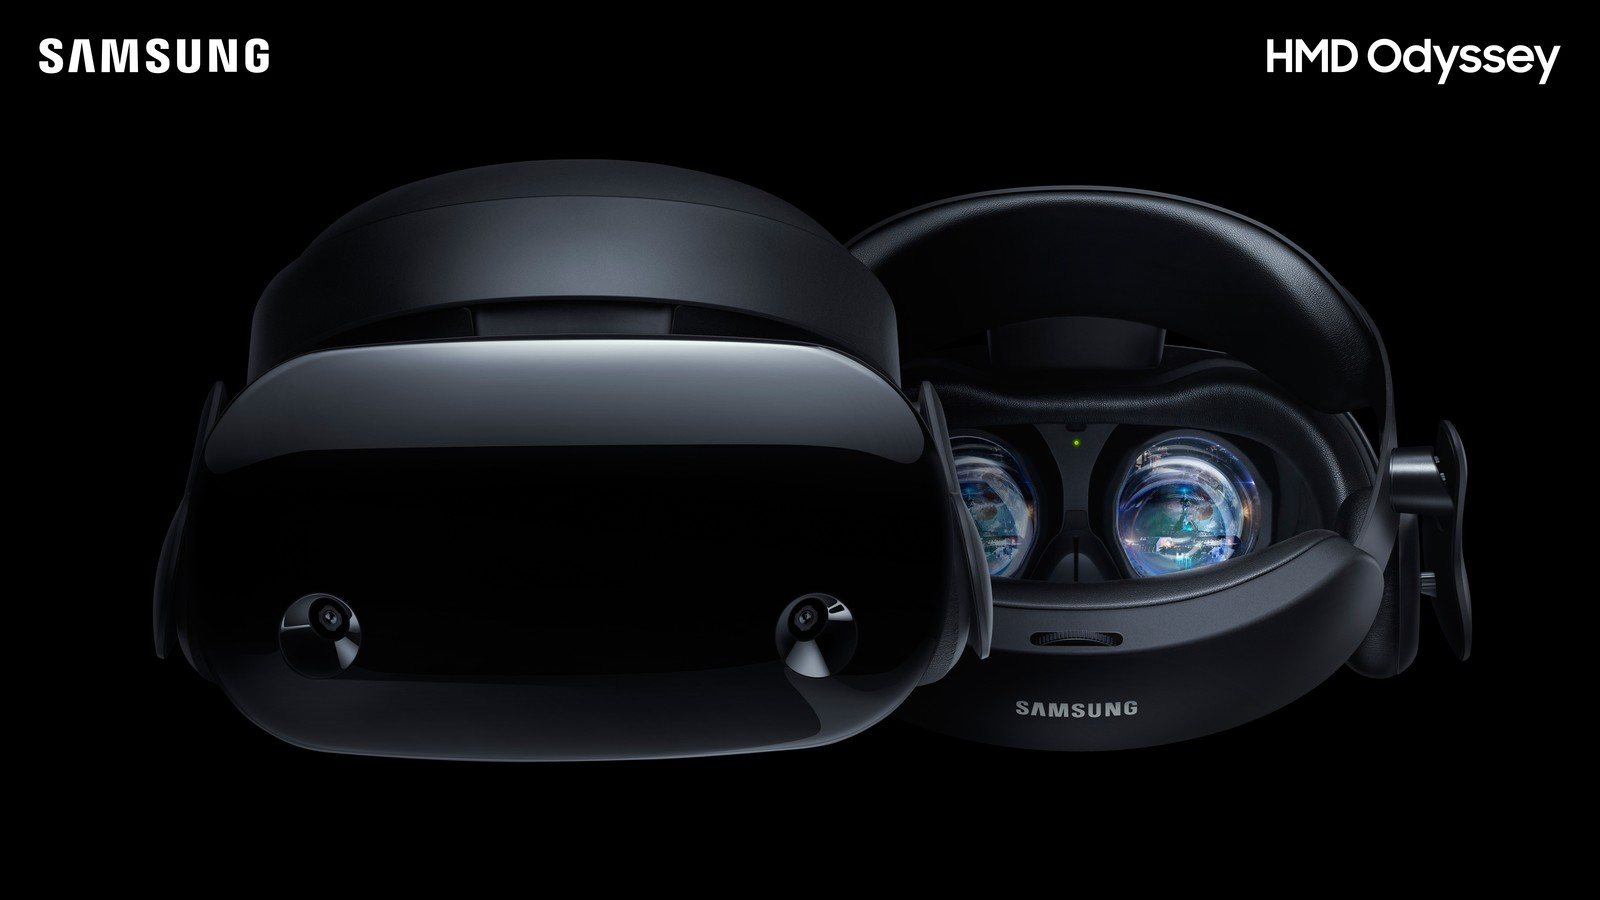 samsung hmd odyssey windows mixed reality 1600